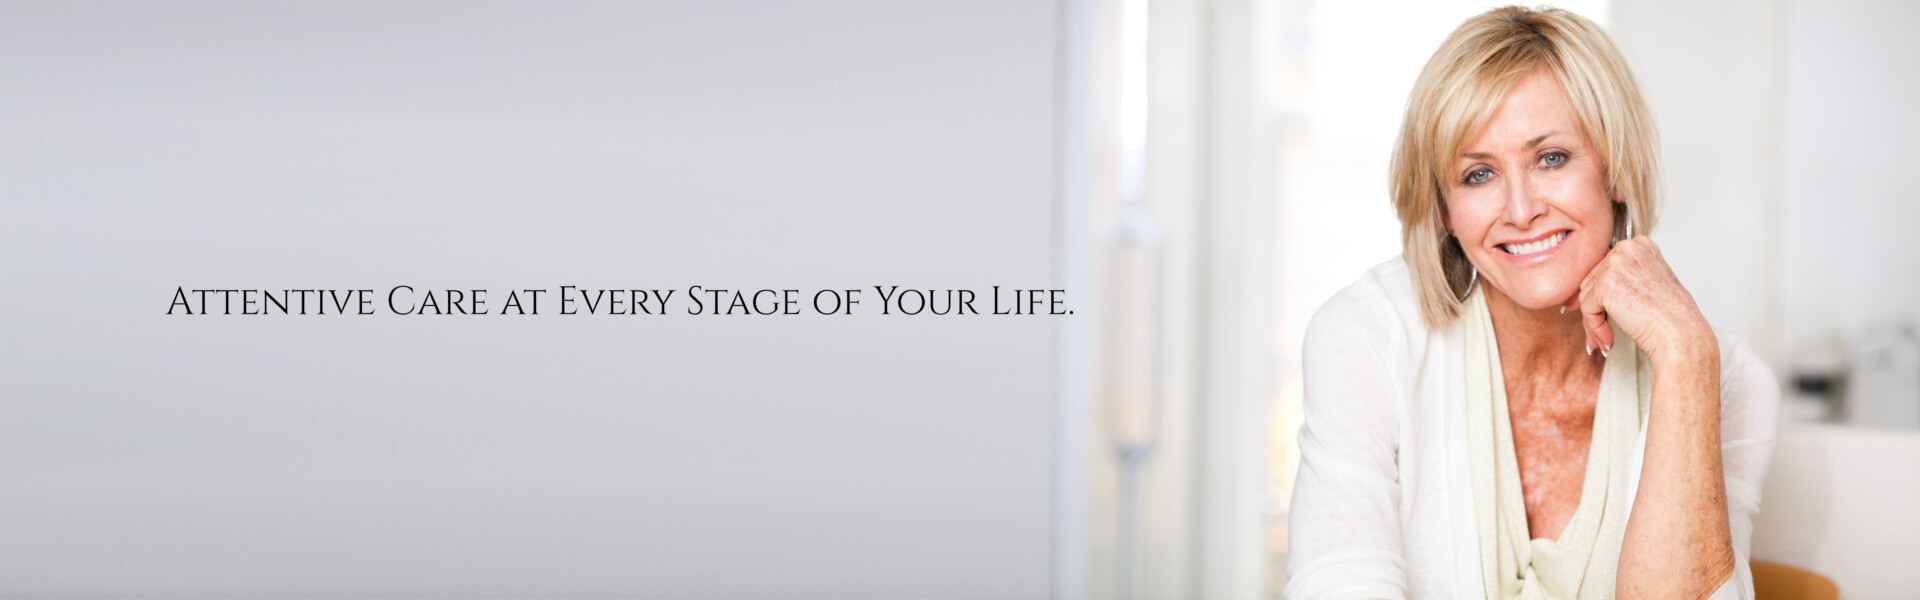 Attentive Care at Every Stage of Your Life.